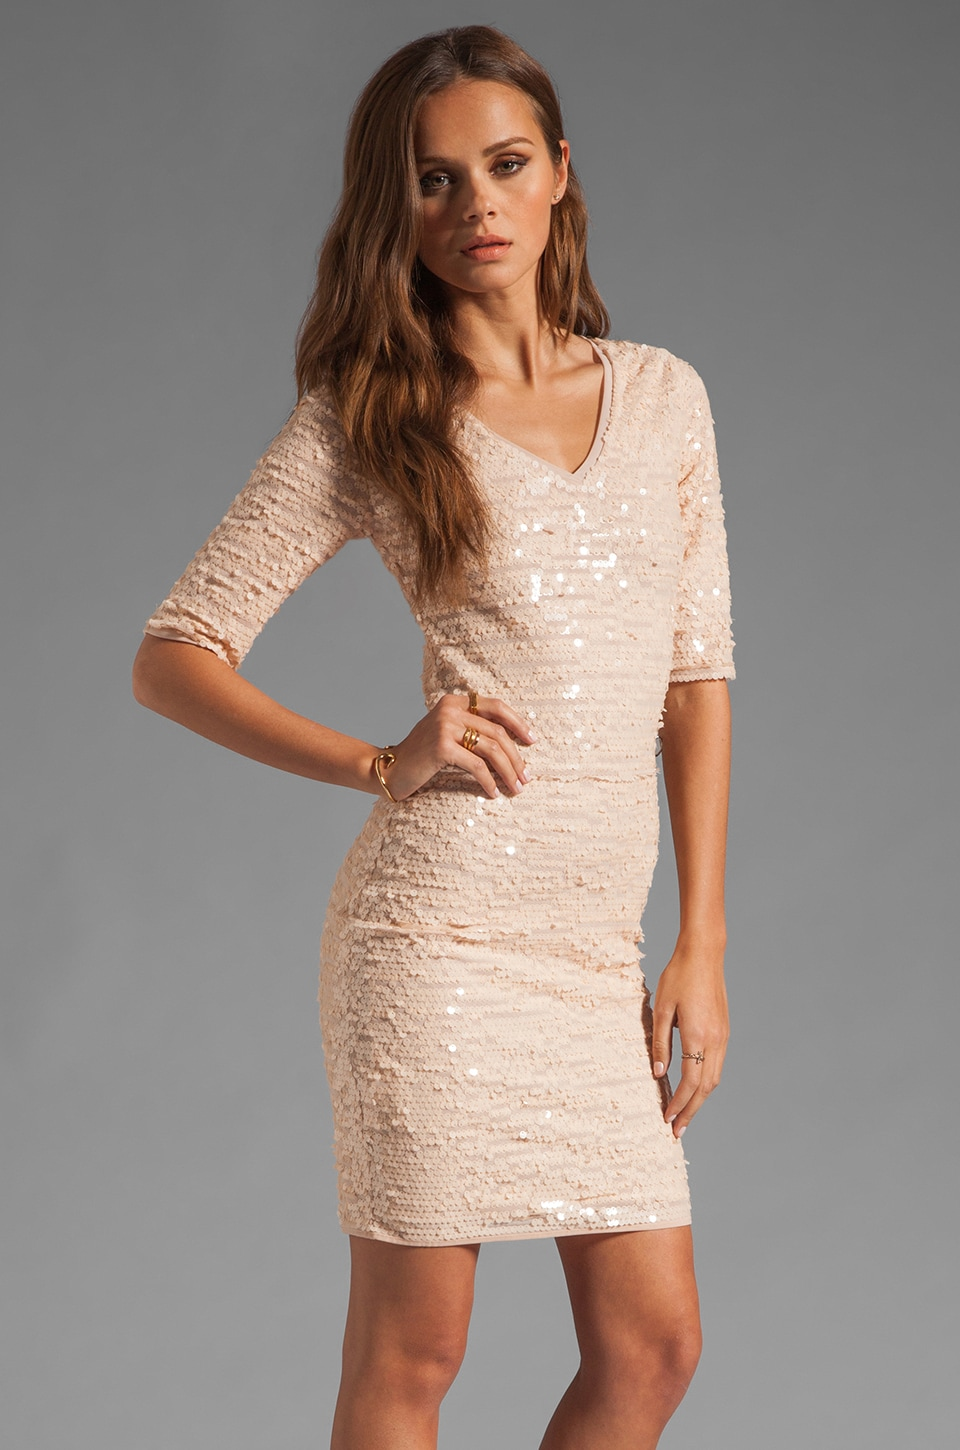 BCBGMAXAZRIA Sequin Mini Dress in Rose Whisper